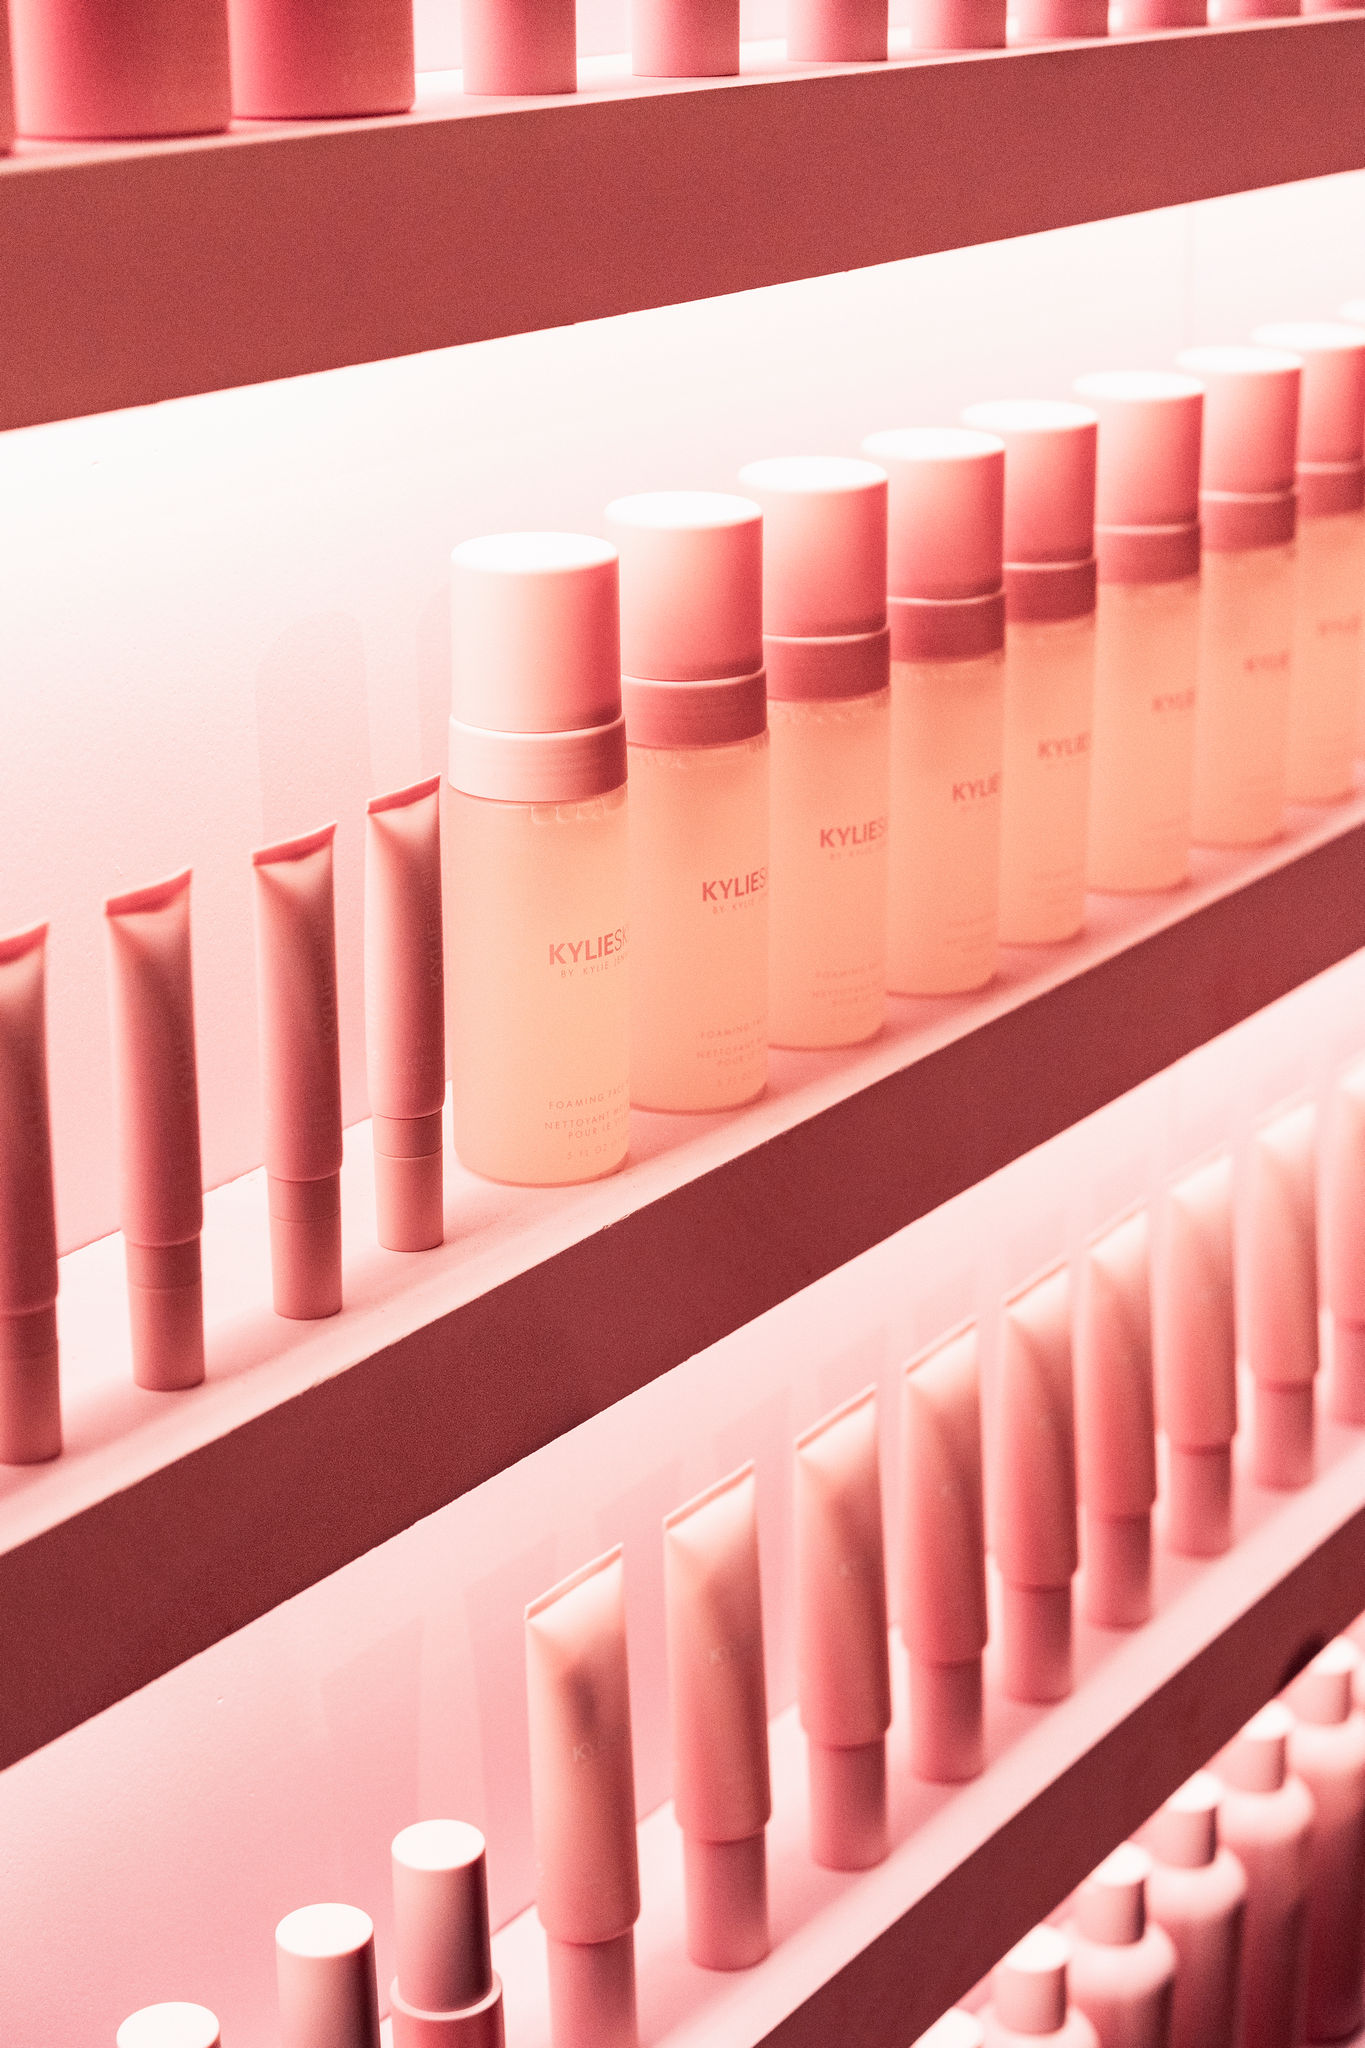 kylieskin_launch_124.jpg